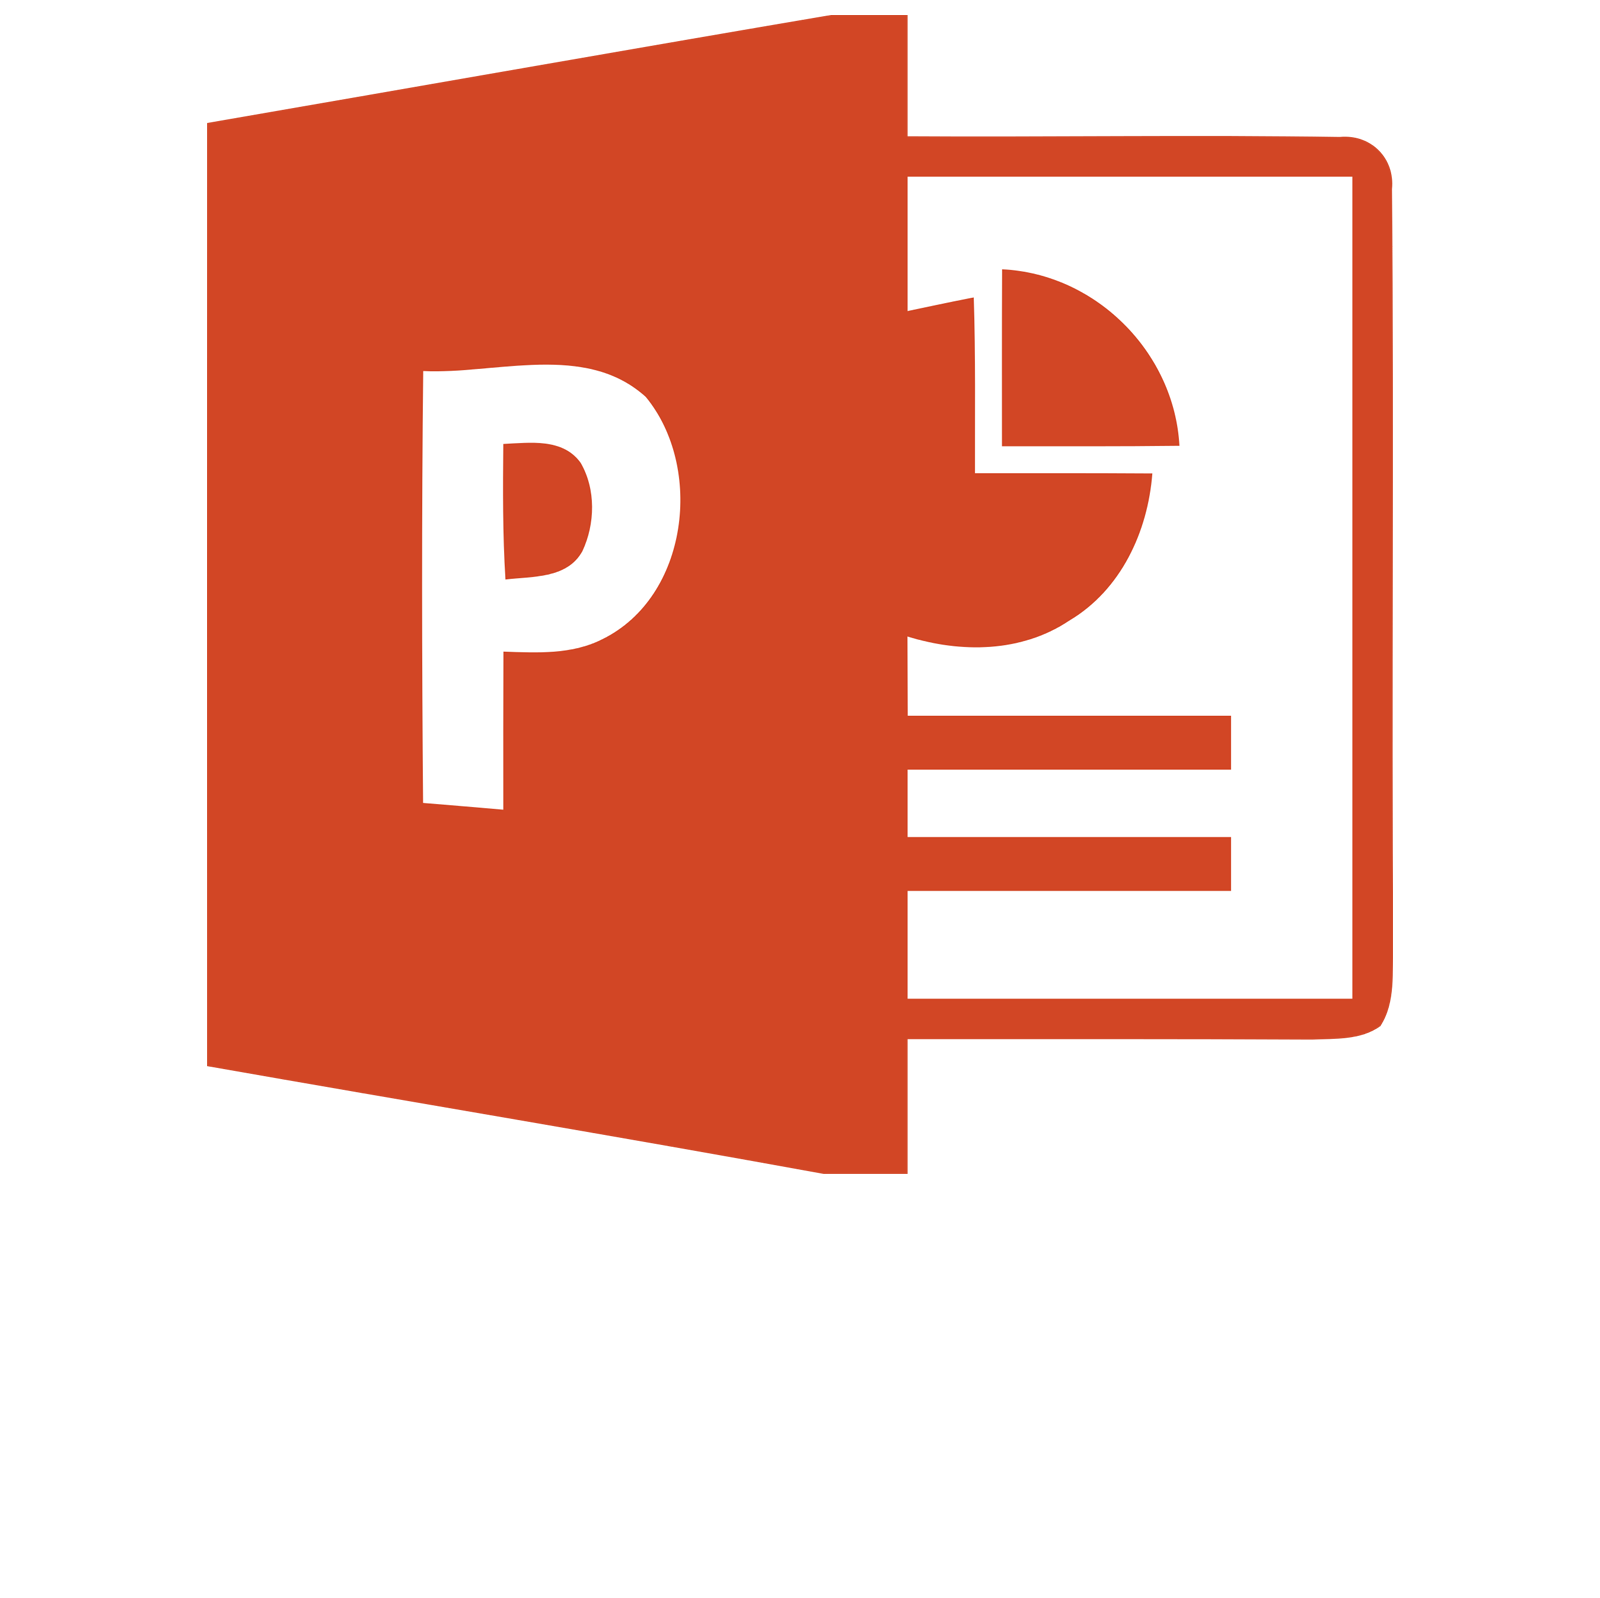 Powerpoint clipart. For free download and